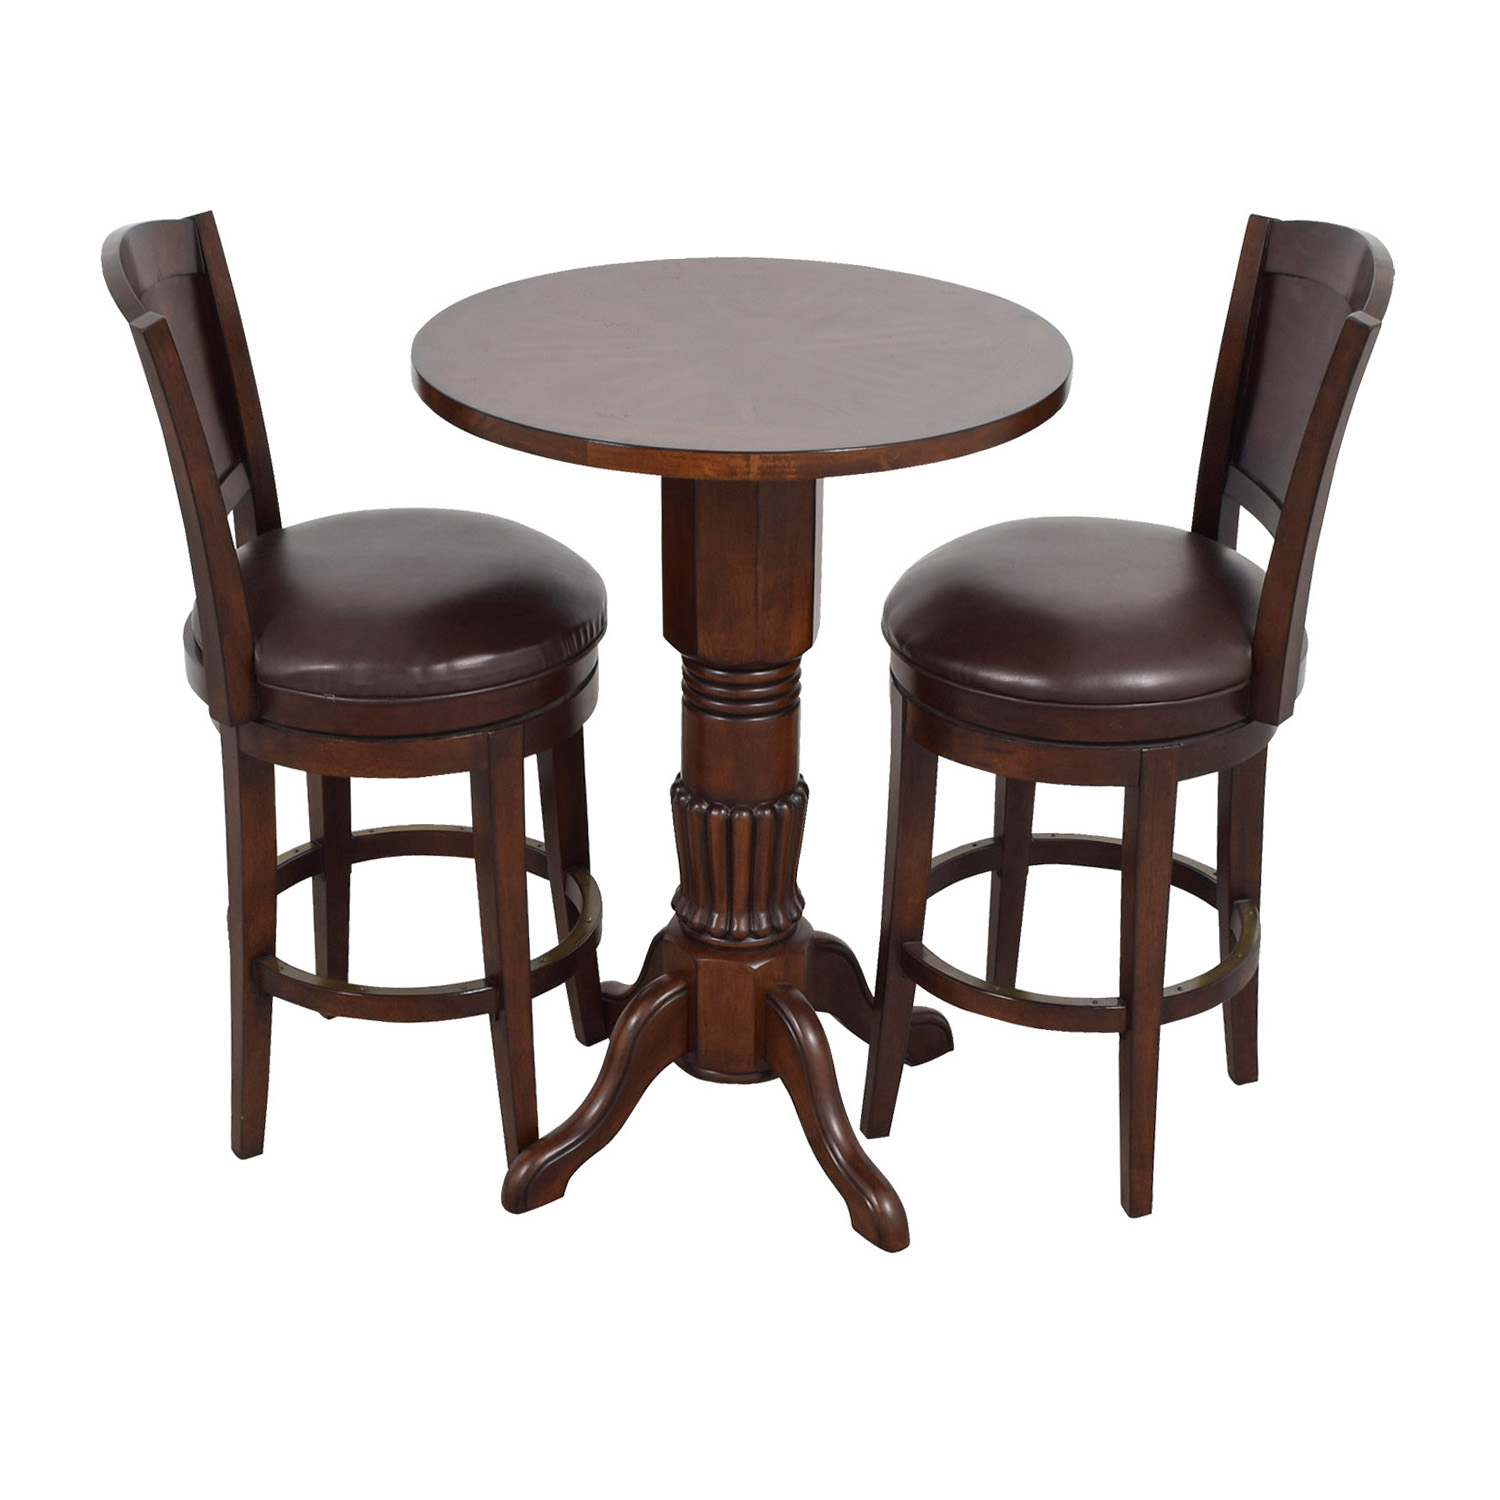 Raymour & Flanigan Raymour & Flanigan Pub Table and Stools Set dimensions